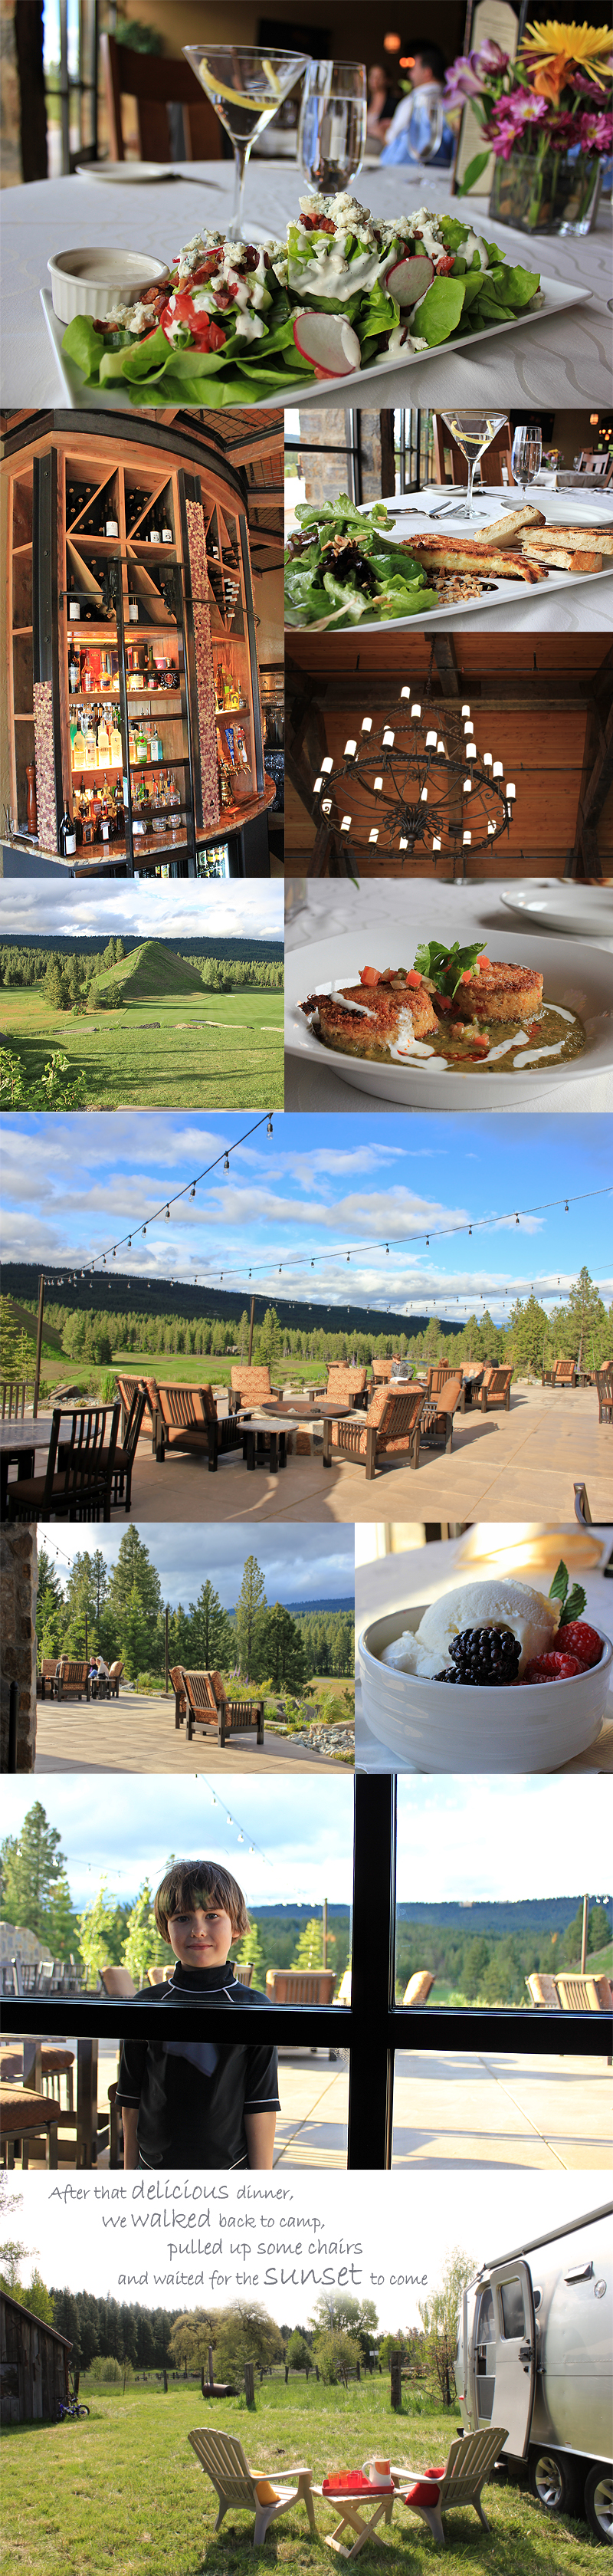 Swiftwater Cellars at Beautiful Suncadia Resort